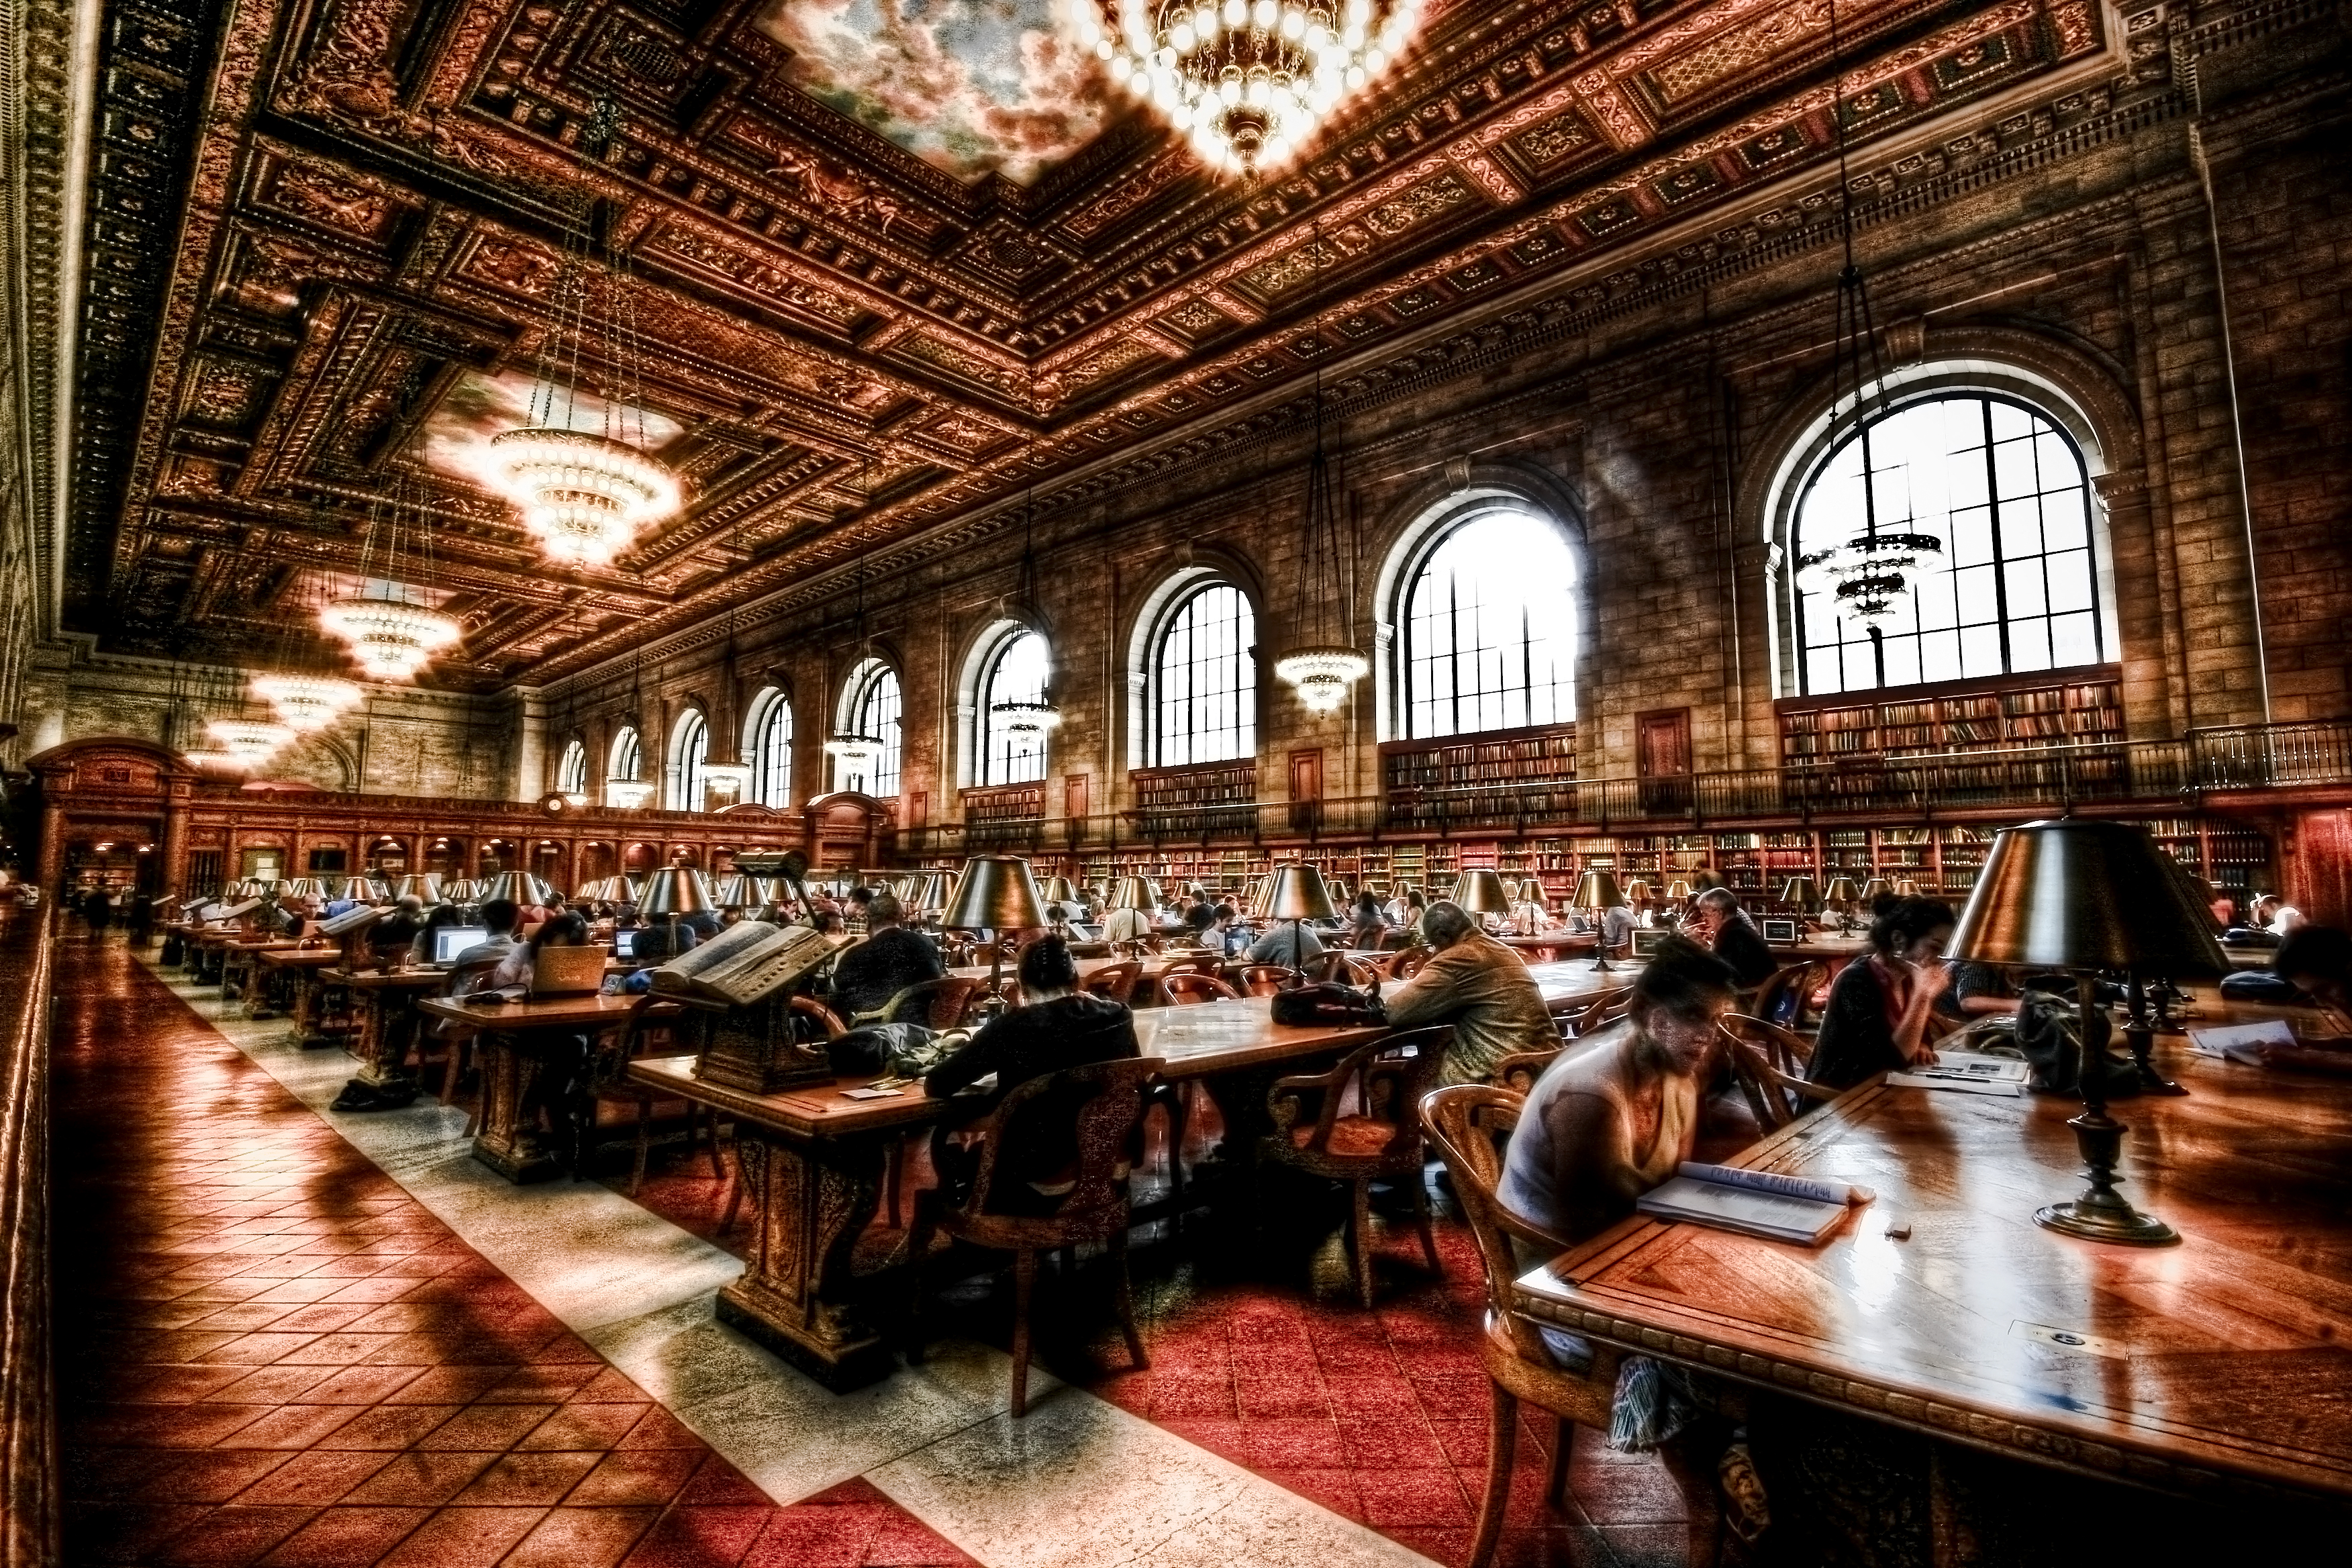 People sitting at tables and working at the Rose Main Reading Room of the NYPL. A blur/color filter has been applied to the photo.